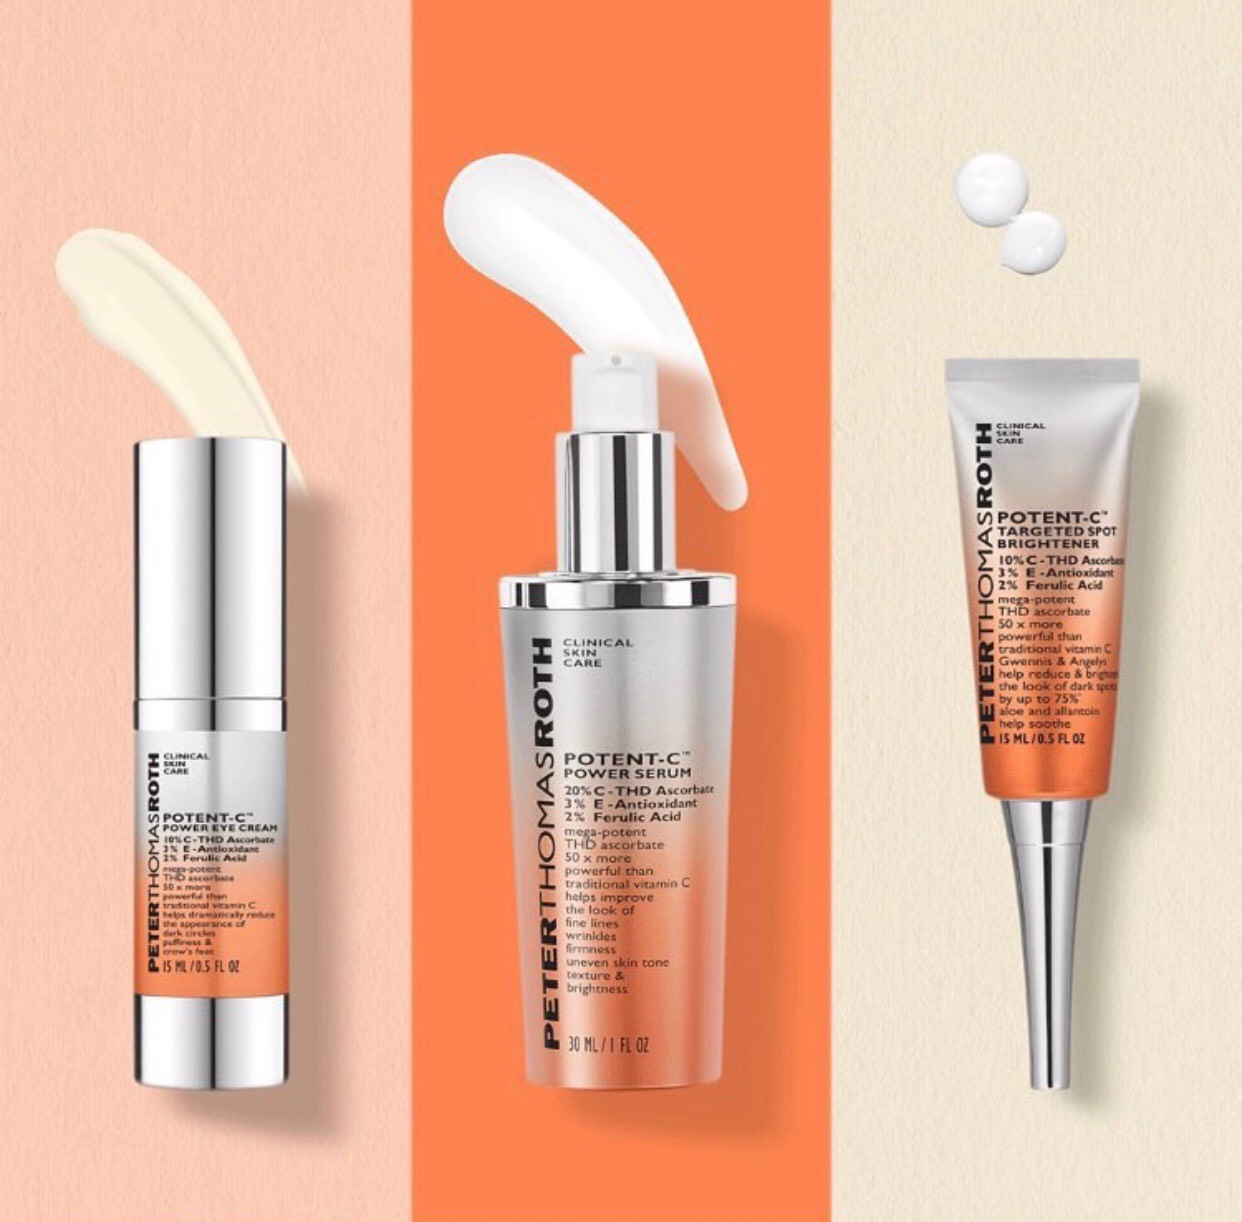 Peter Thomas Roth Vitamin C Potent C Collection